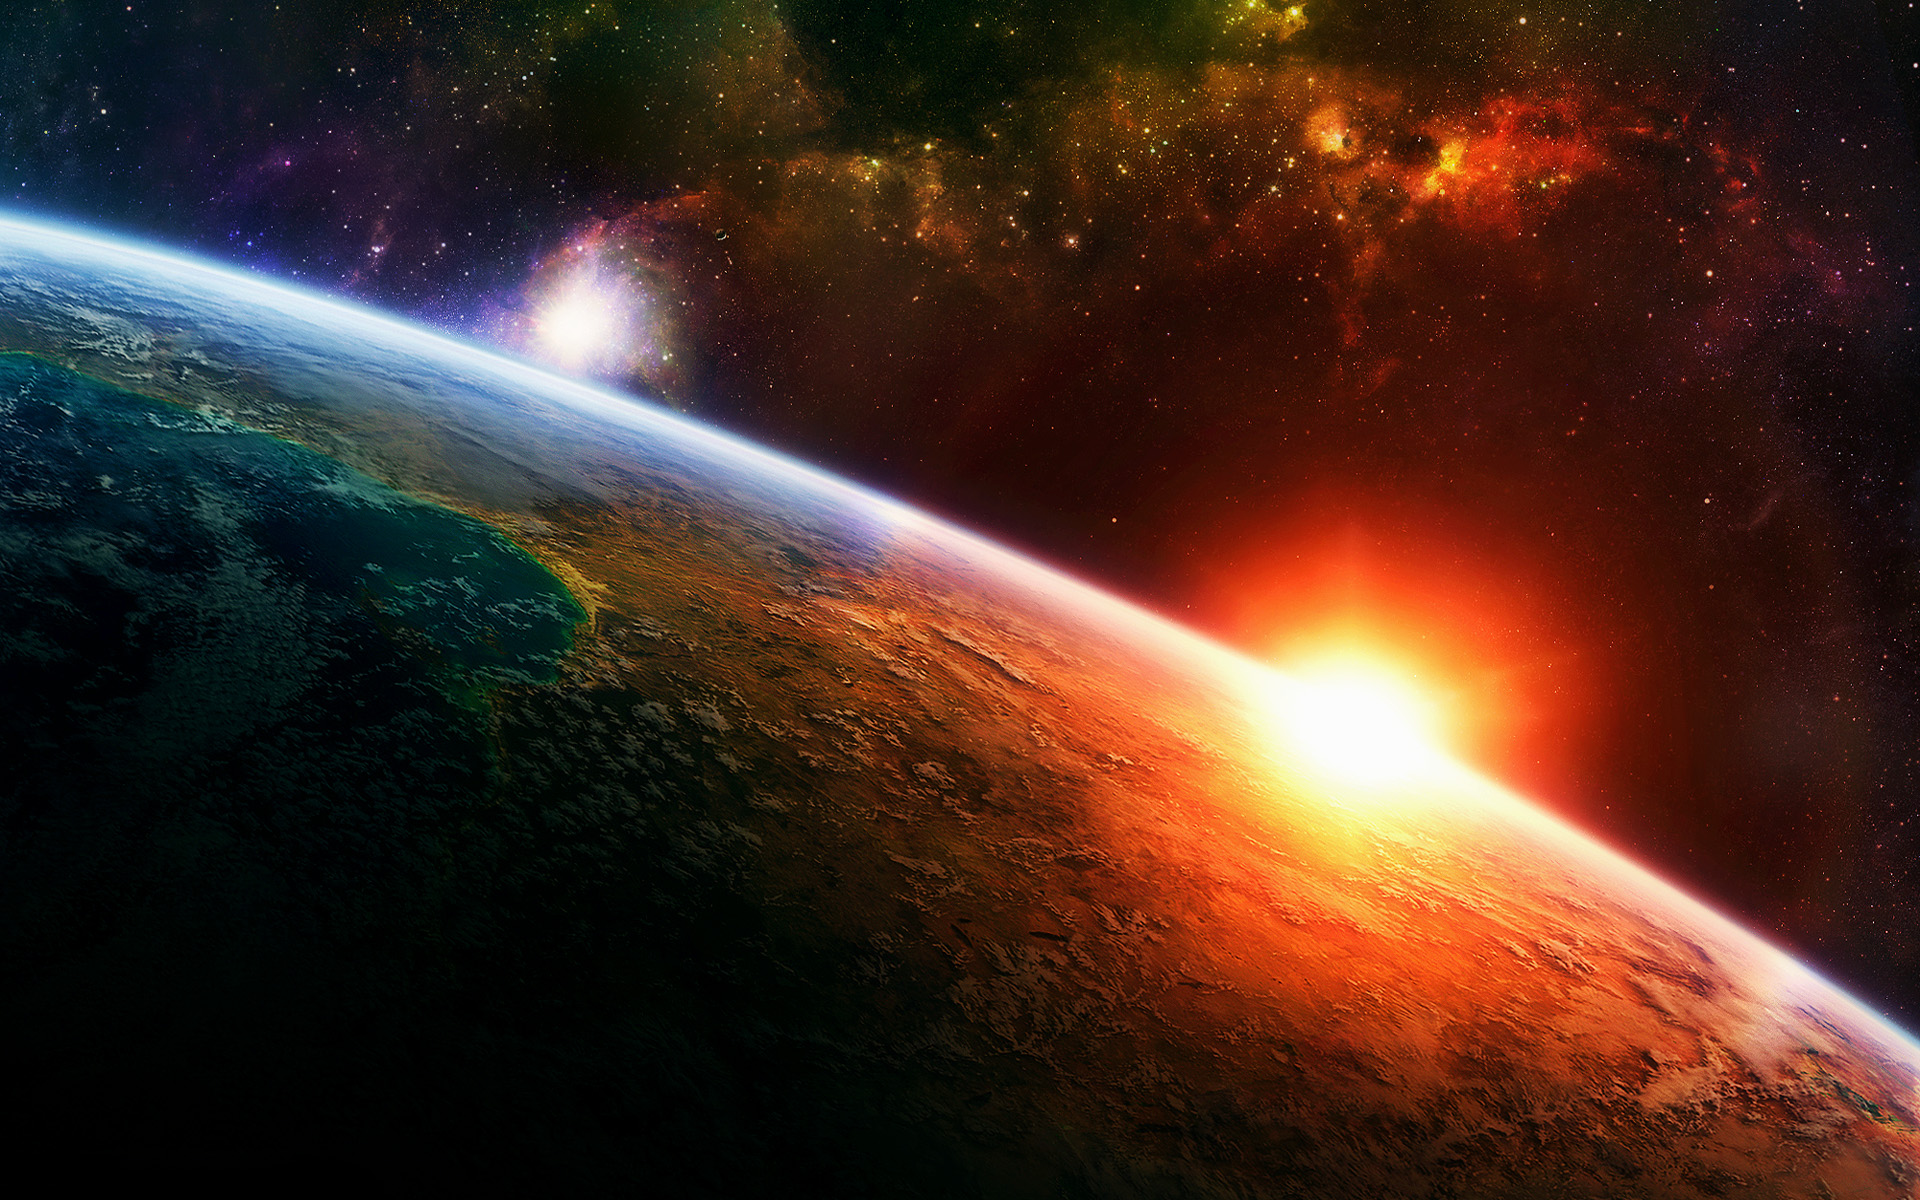 Space Planet Wallpaper High Resolution 1920x1200